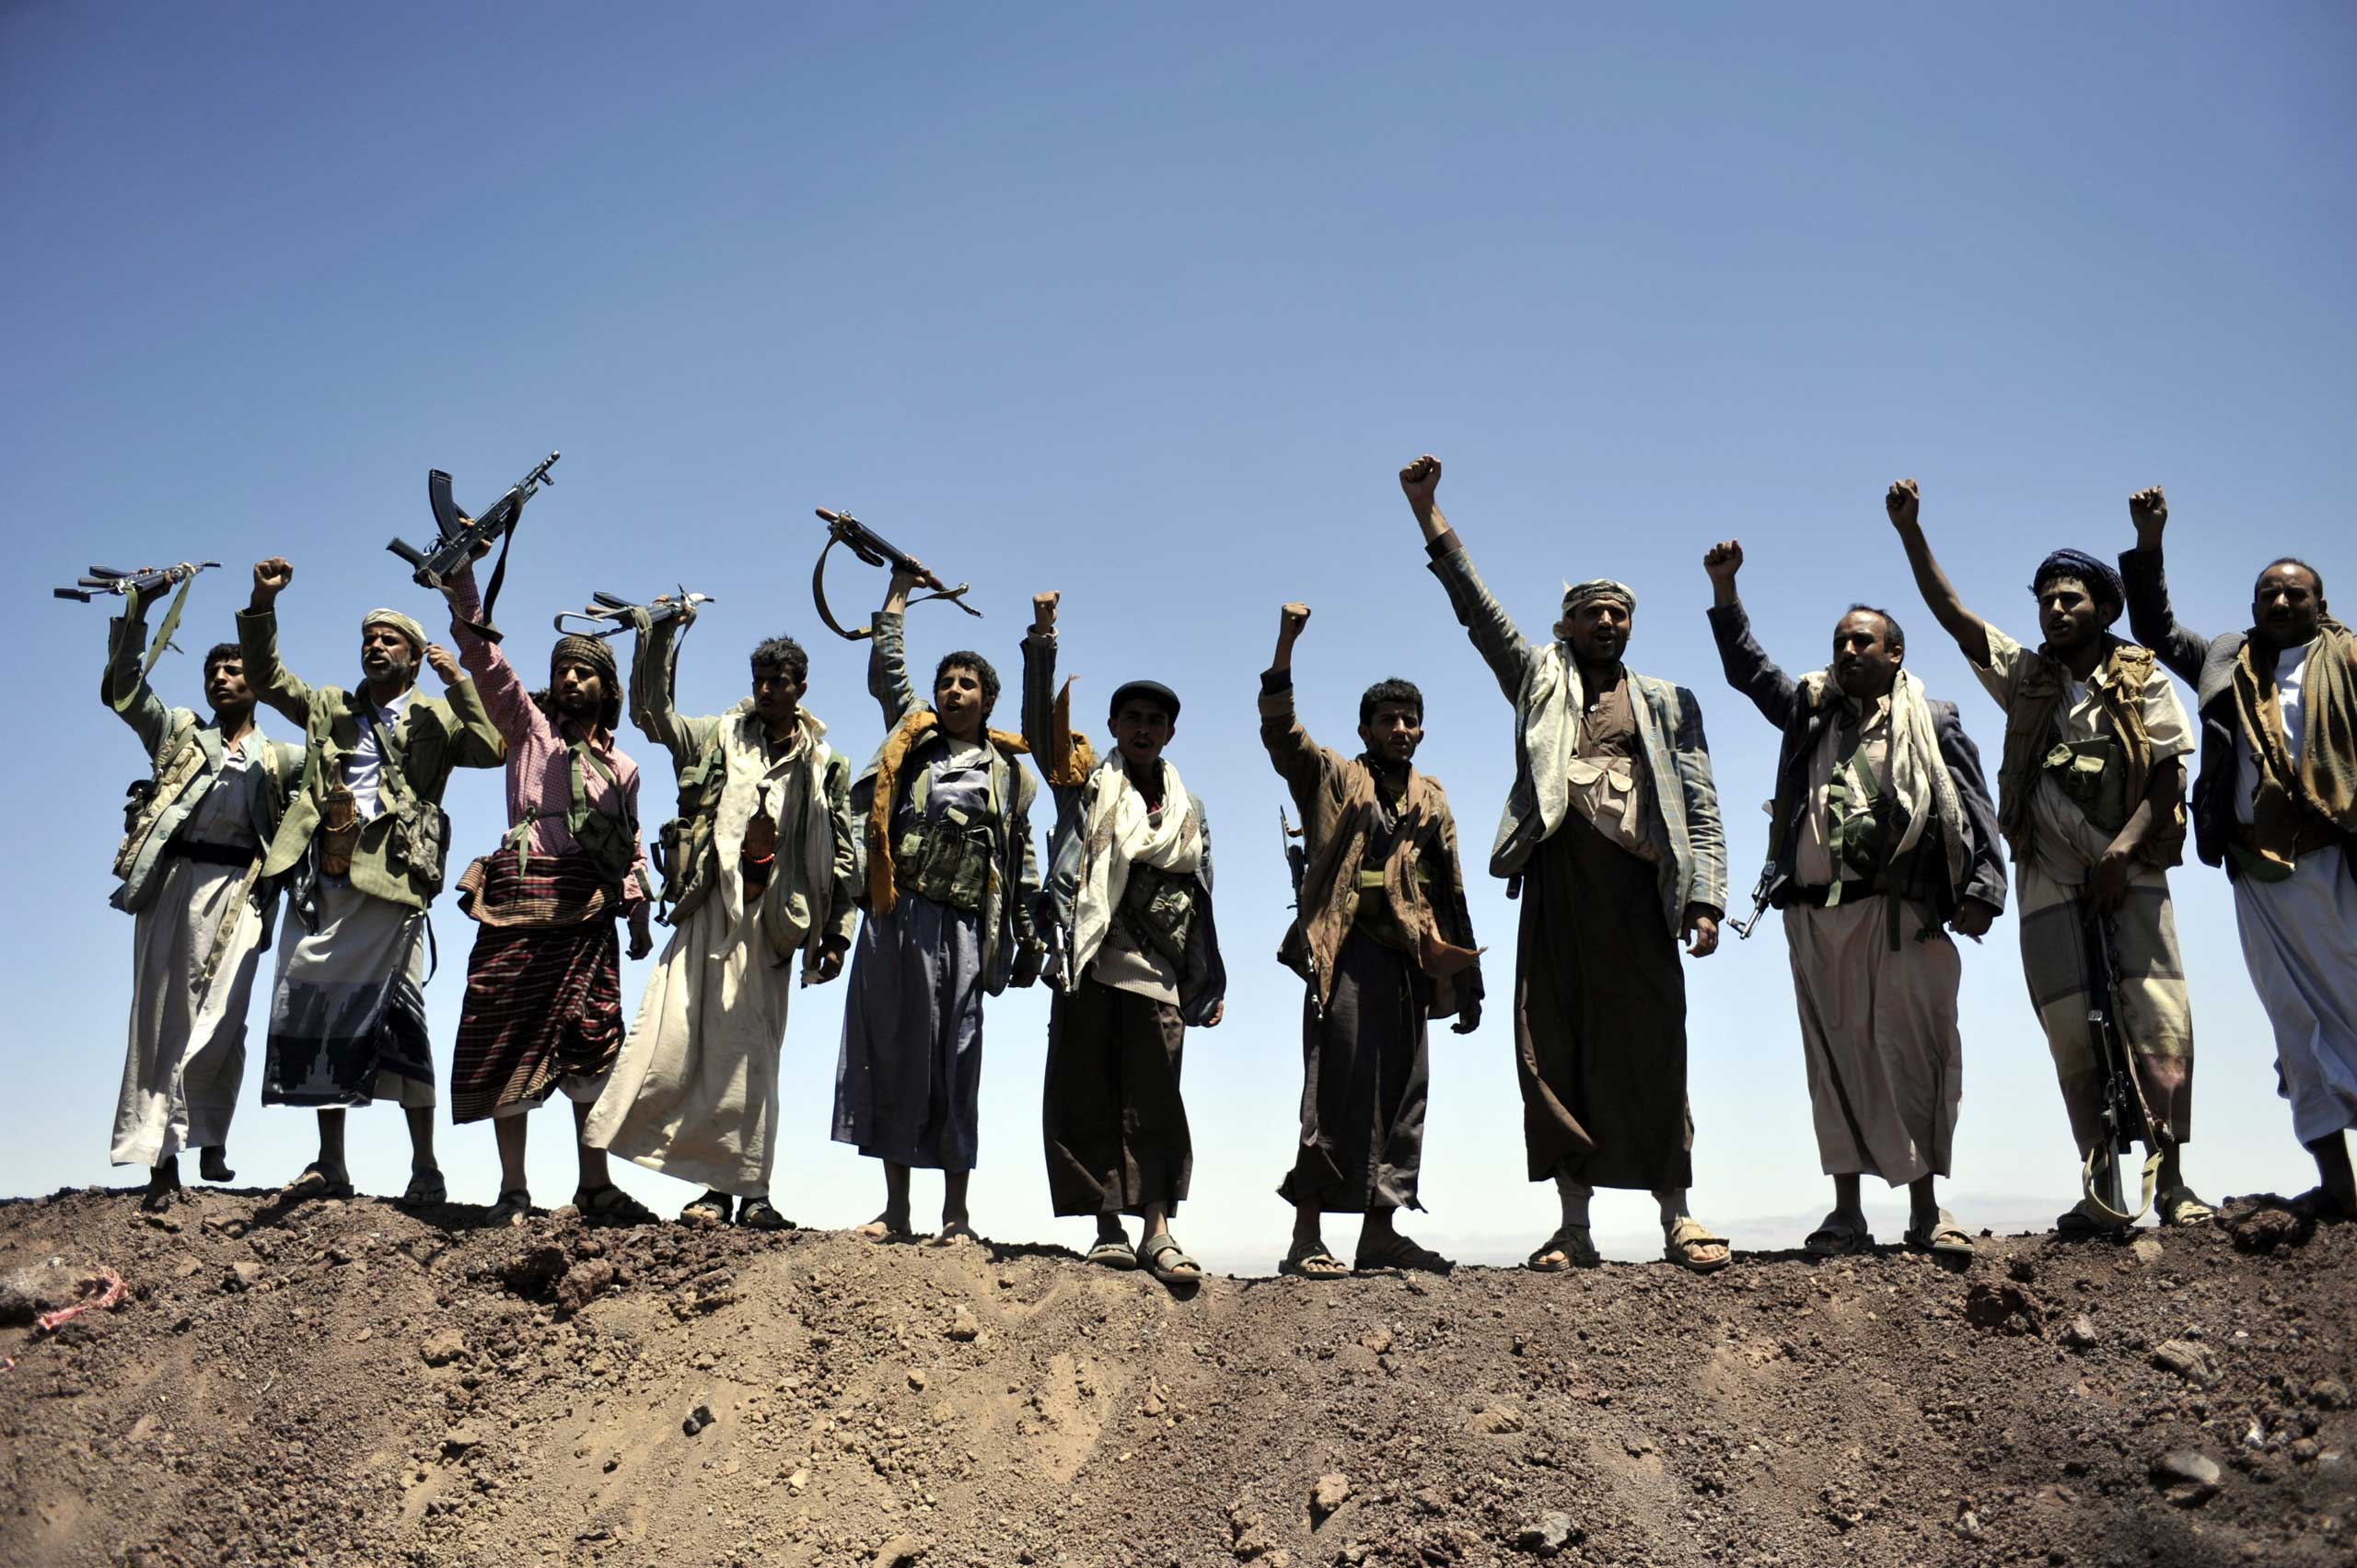 The Houthis, an insurgency comprising members of the Shi'ite Zaidi minority, took control of Sana'a on Sept. 21, 2014, after years of clashes with government forces in the north. The group, which allowed President Abd-Rabbo Mansour Hadi to remain at his post, gained wider traction as self-proclaimed reformers, capitalizing on dissatisfaction with the poor economic and security situations under Hadi's U.S.-backed government